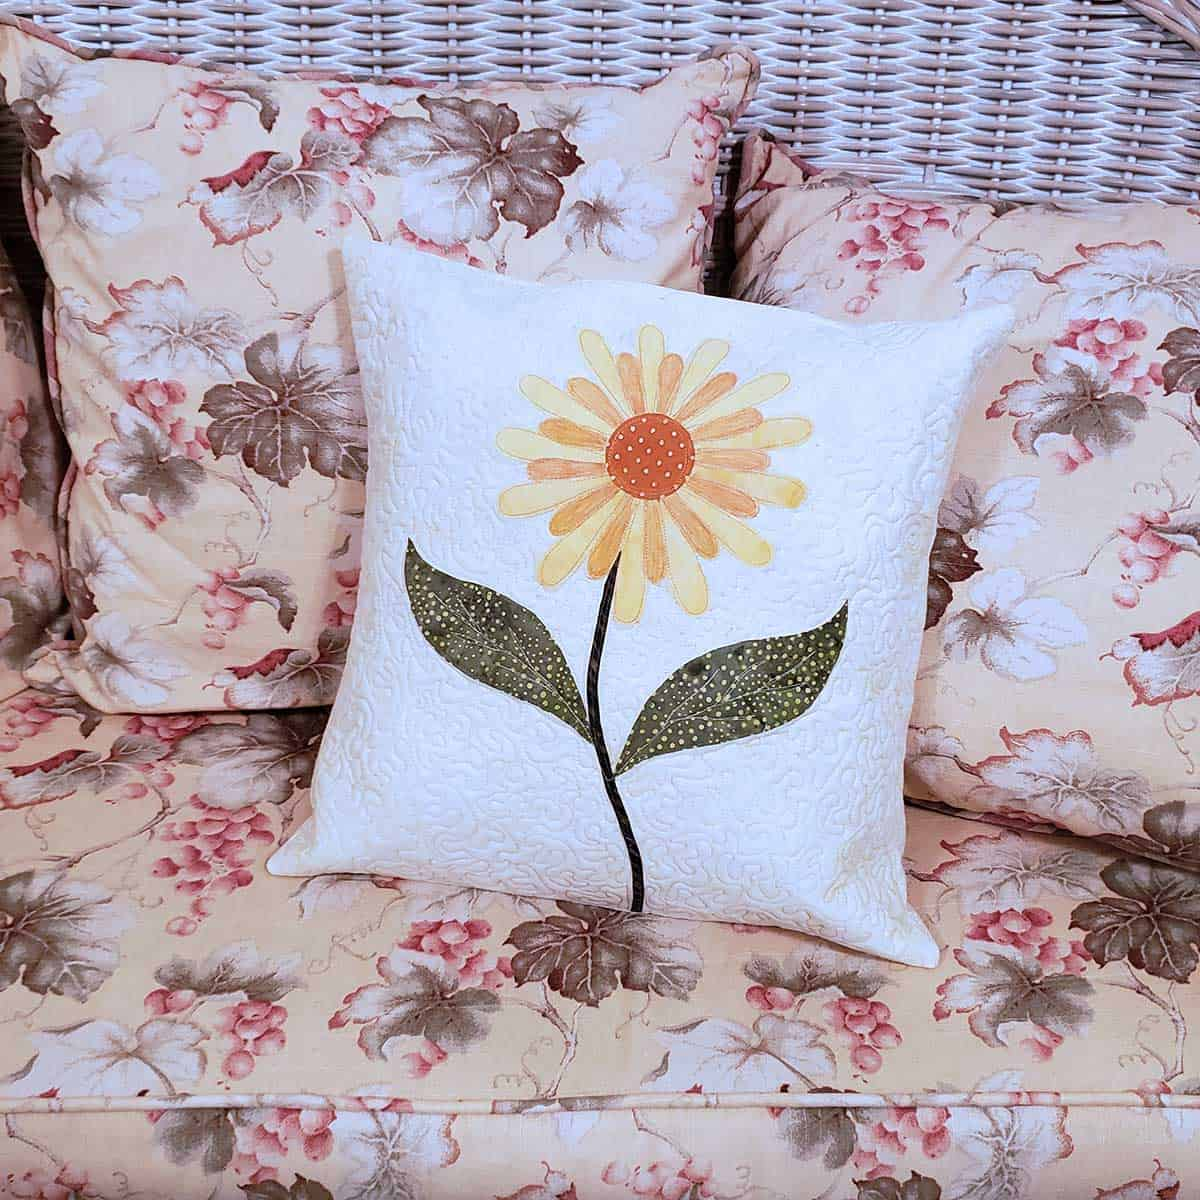 Daisy pillow matches the wicker furniture upholstery